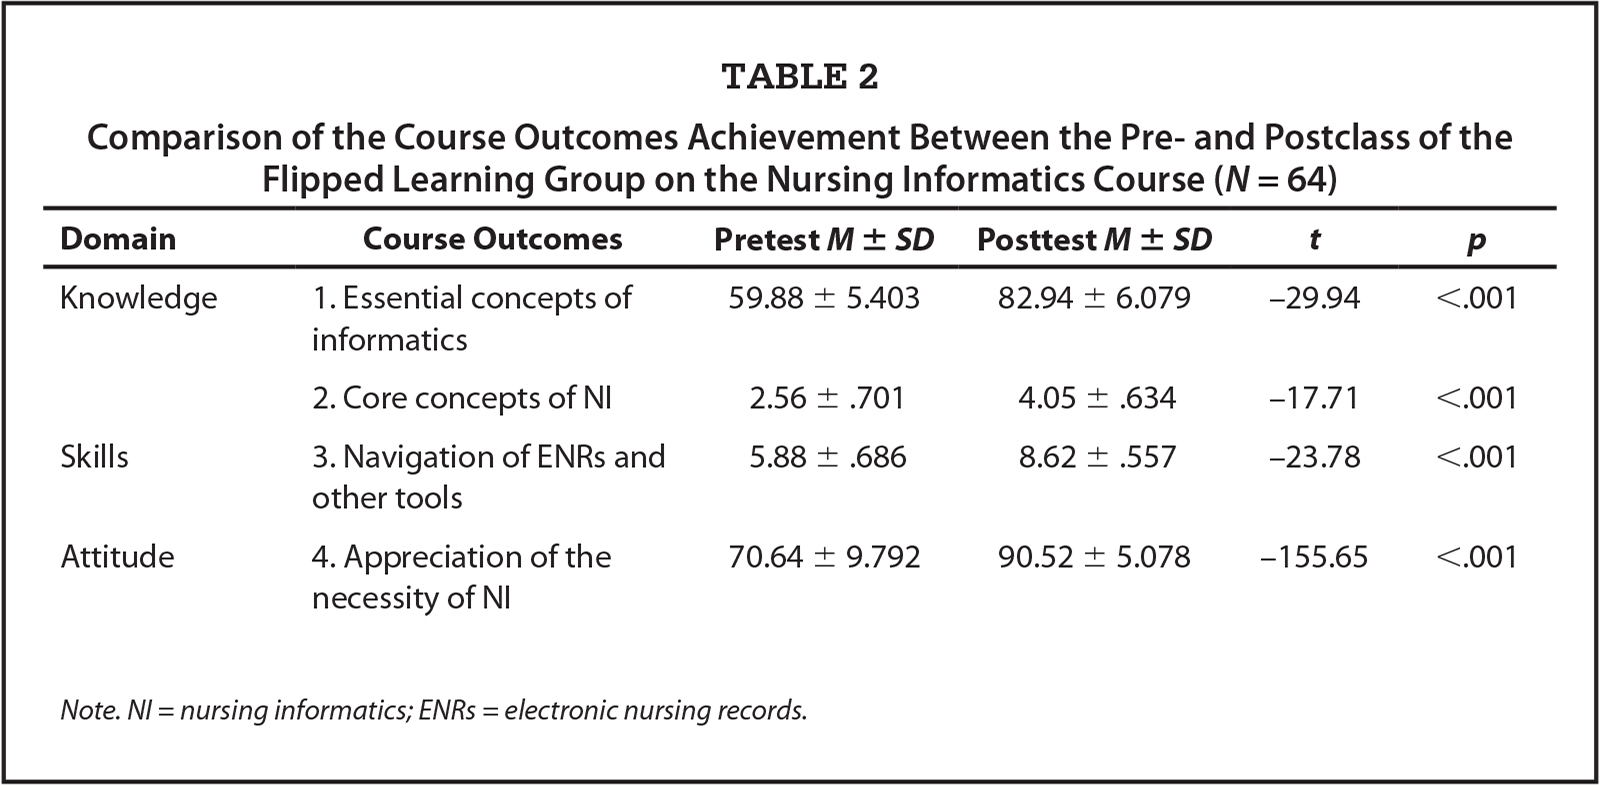 Comparison of the Course Outcomes Achievement Between the Pre- and Postclass of the Flipped Learning Group on the Nursing Informatics Course (N = 64)